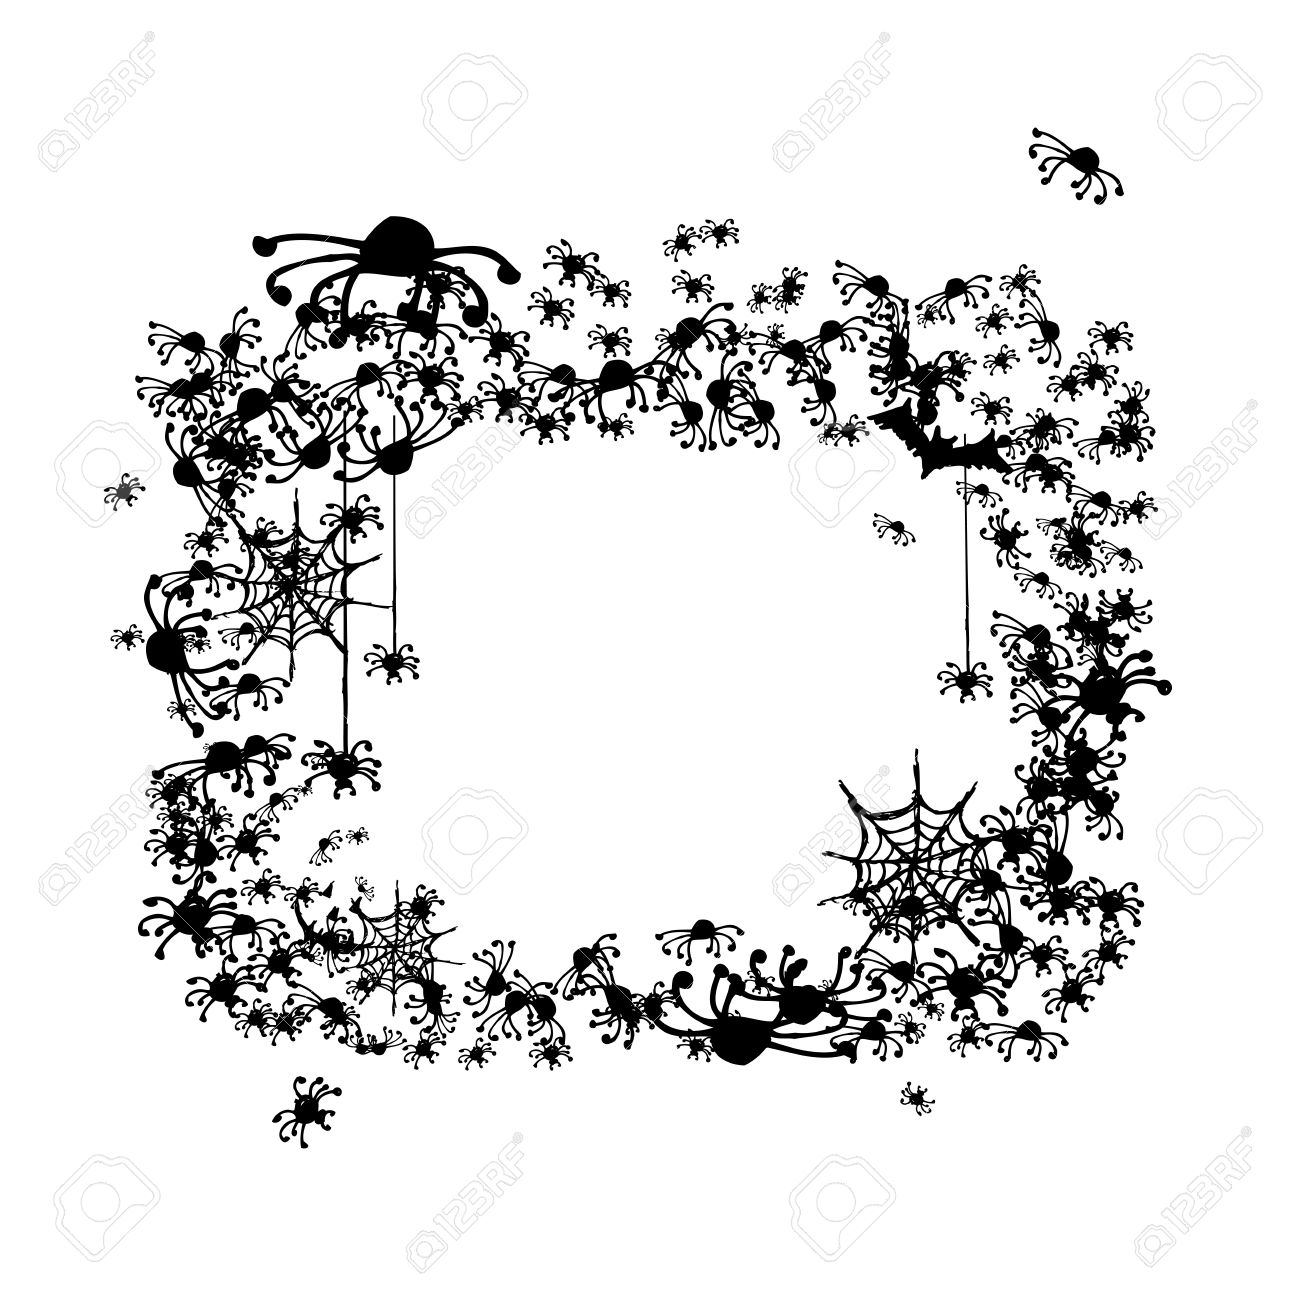 Halloween Frame Made From Spiders And Bats Royalty Free Cliparts ...